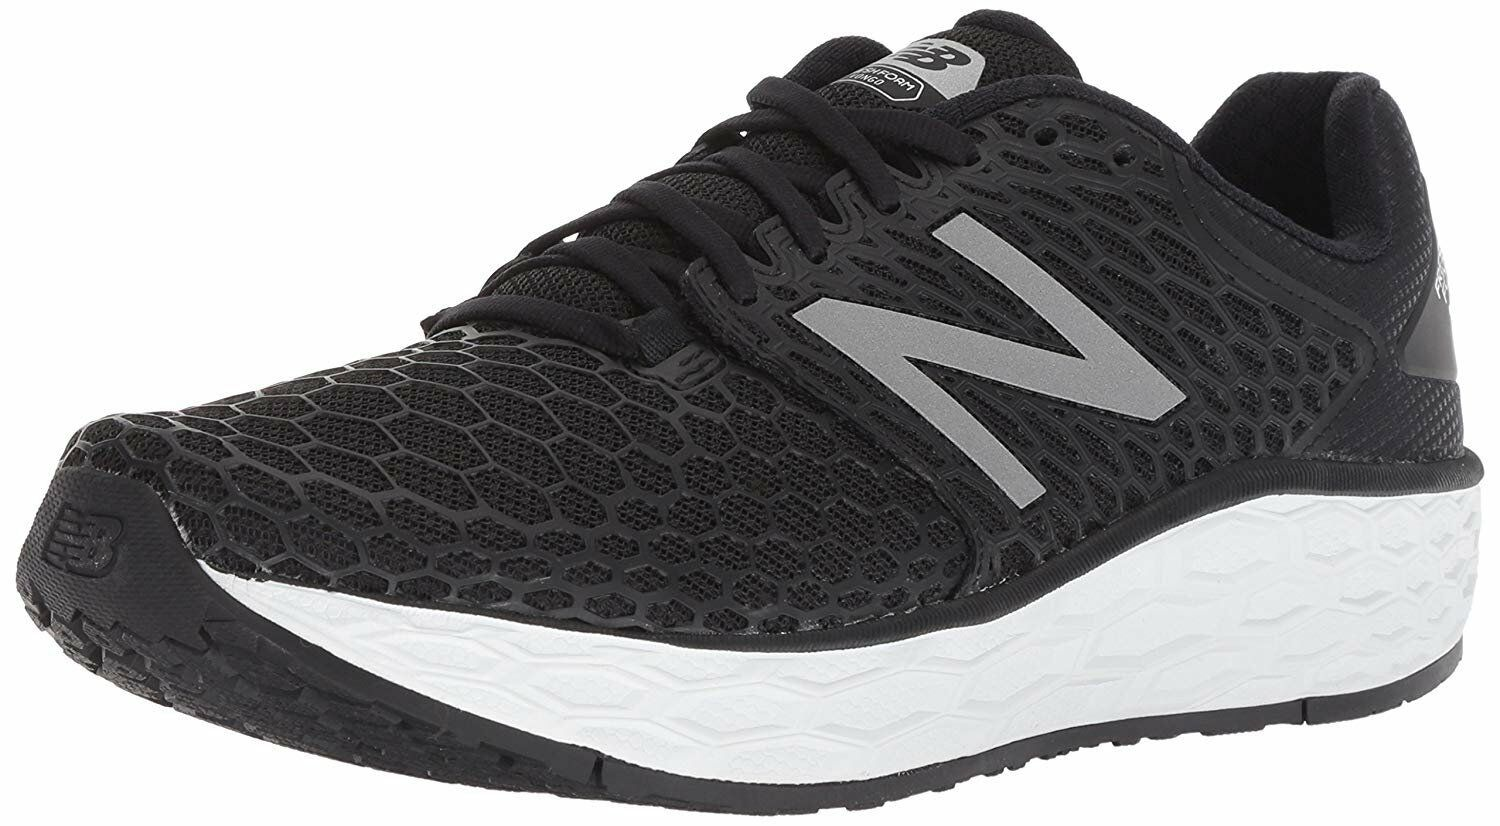 New Balance Men's Vongo V3 Fresh Foam Running shoes